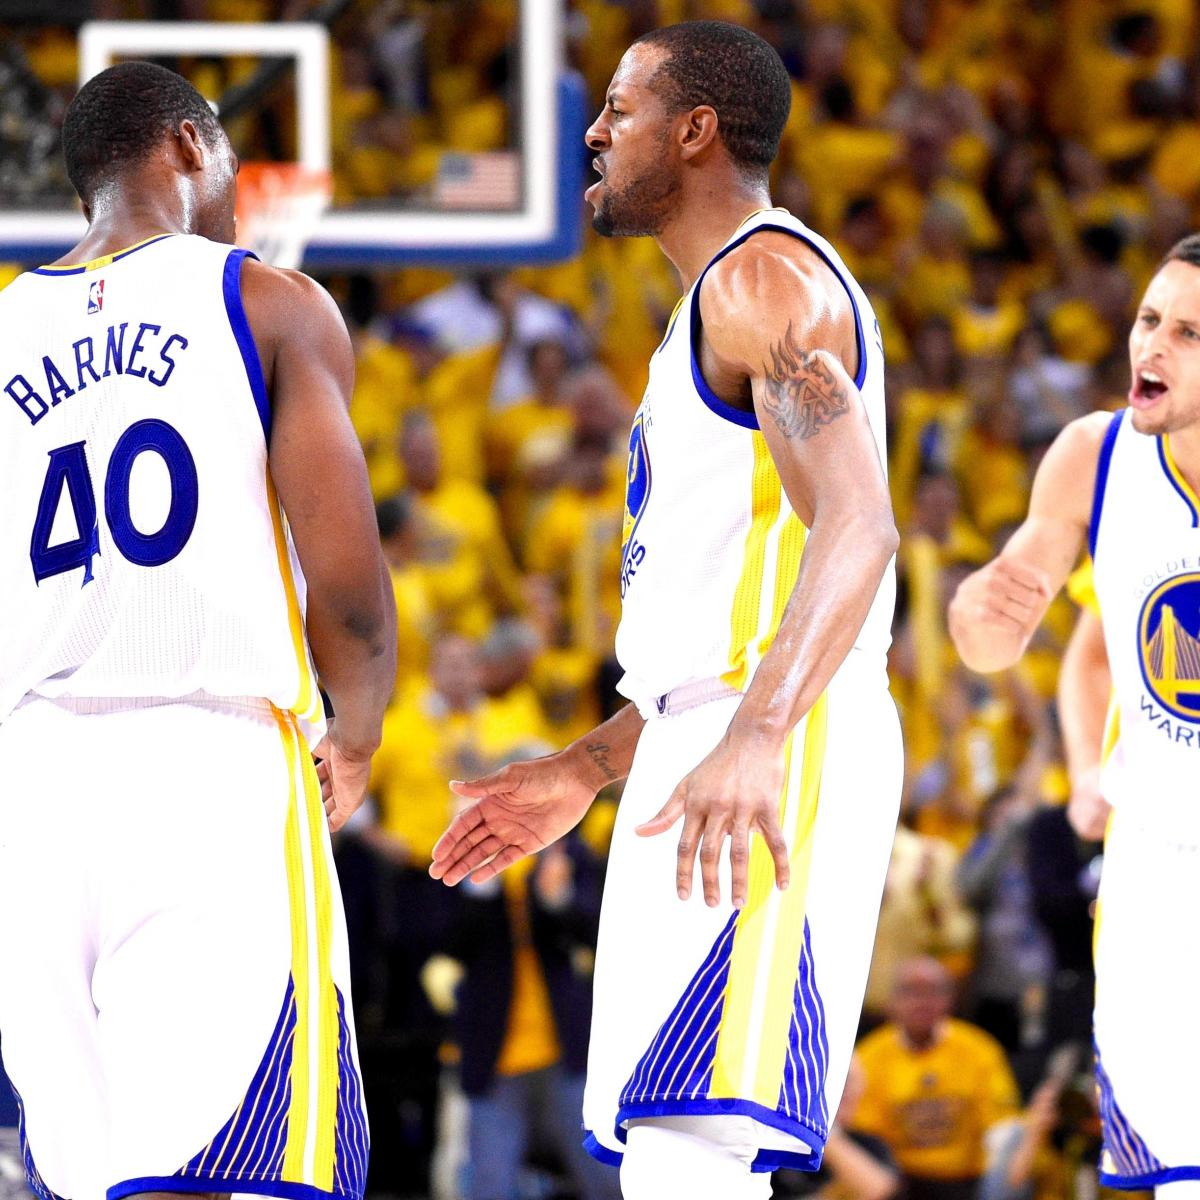 Rockets Vs Warriors Games: Rockets Vs. Warriors: Game 5 Score And Twitter Reaction